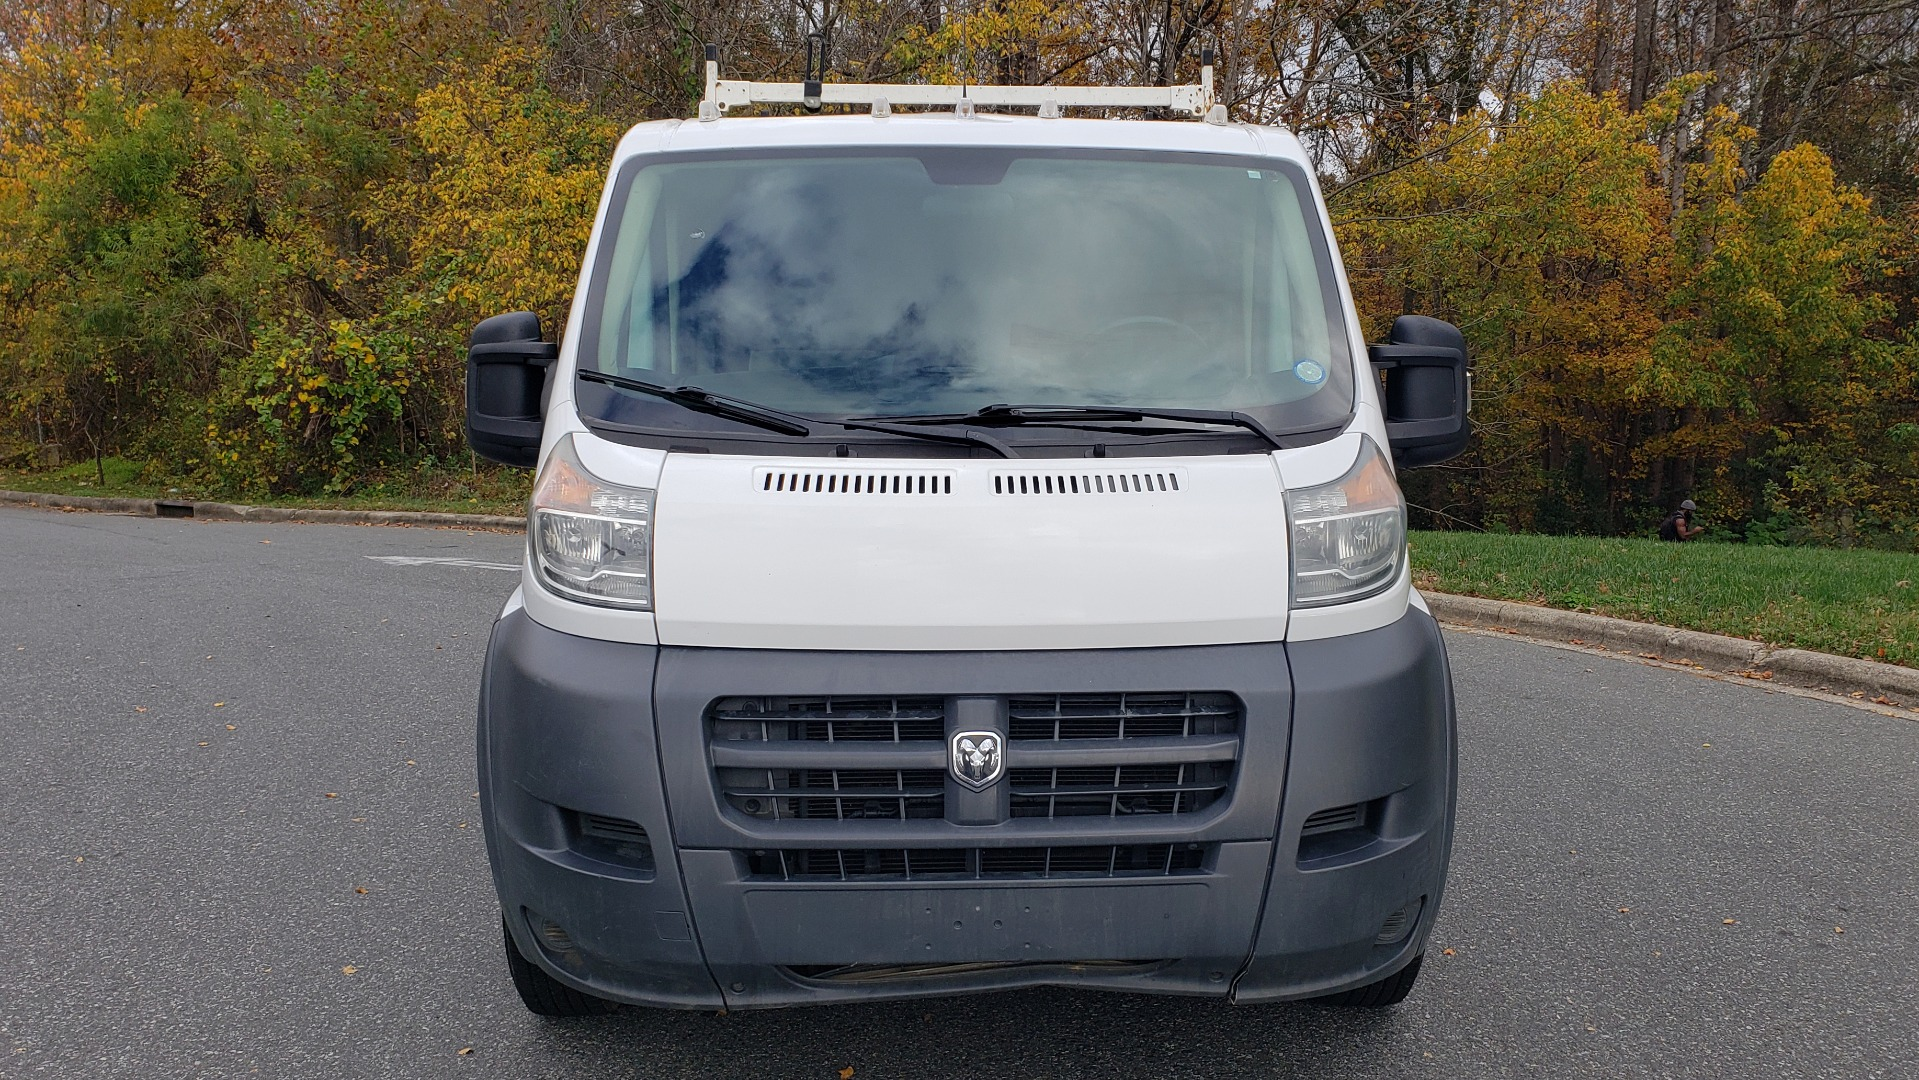 Used 2015 Ram PROMASTER CARGO VAN 136-INCH WB / LOW ROOF / LADDER RACK / INSIDE RACKS for sale Sold at Formula Imports in Charlotte NC 28227 17